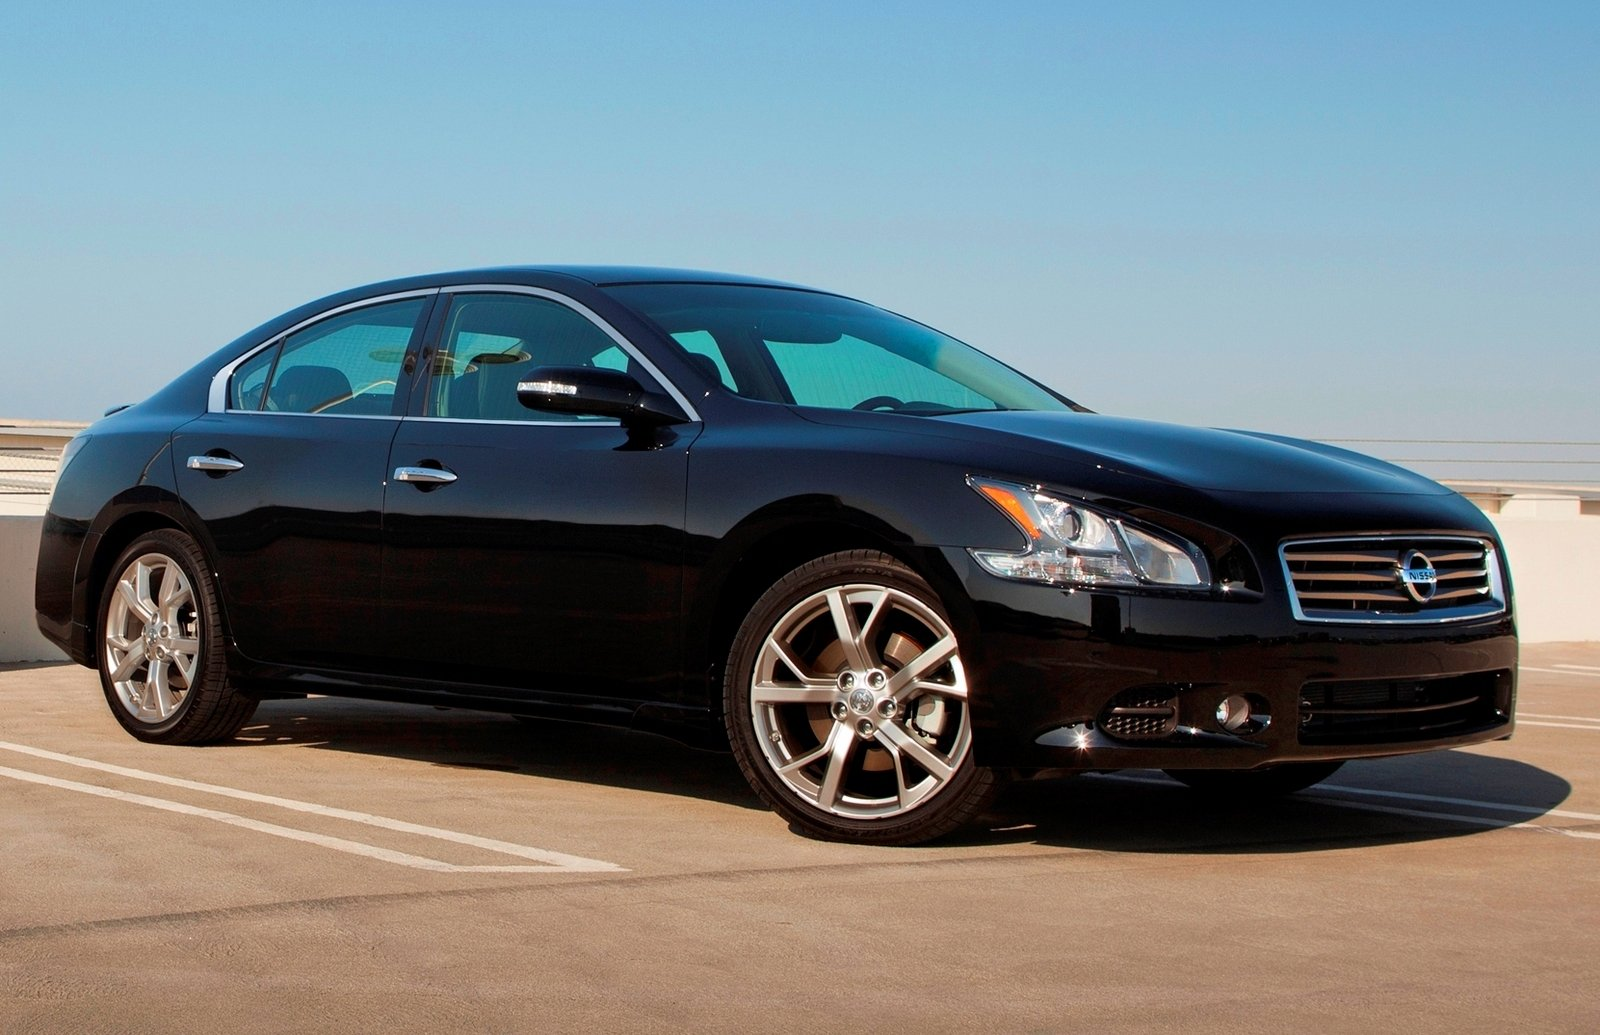 2014 nissan maxima picture 520784 car review top speed. Black Bedroom Furniture Sets. Home Design Ideas